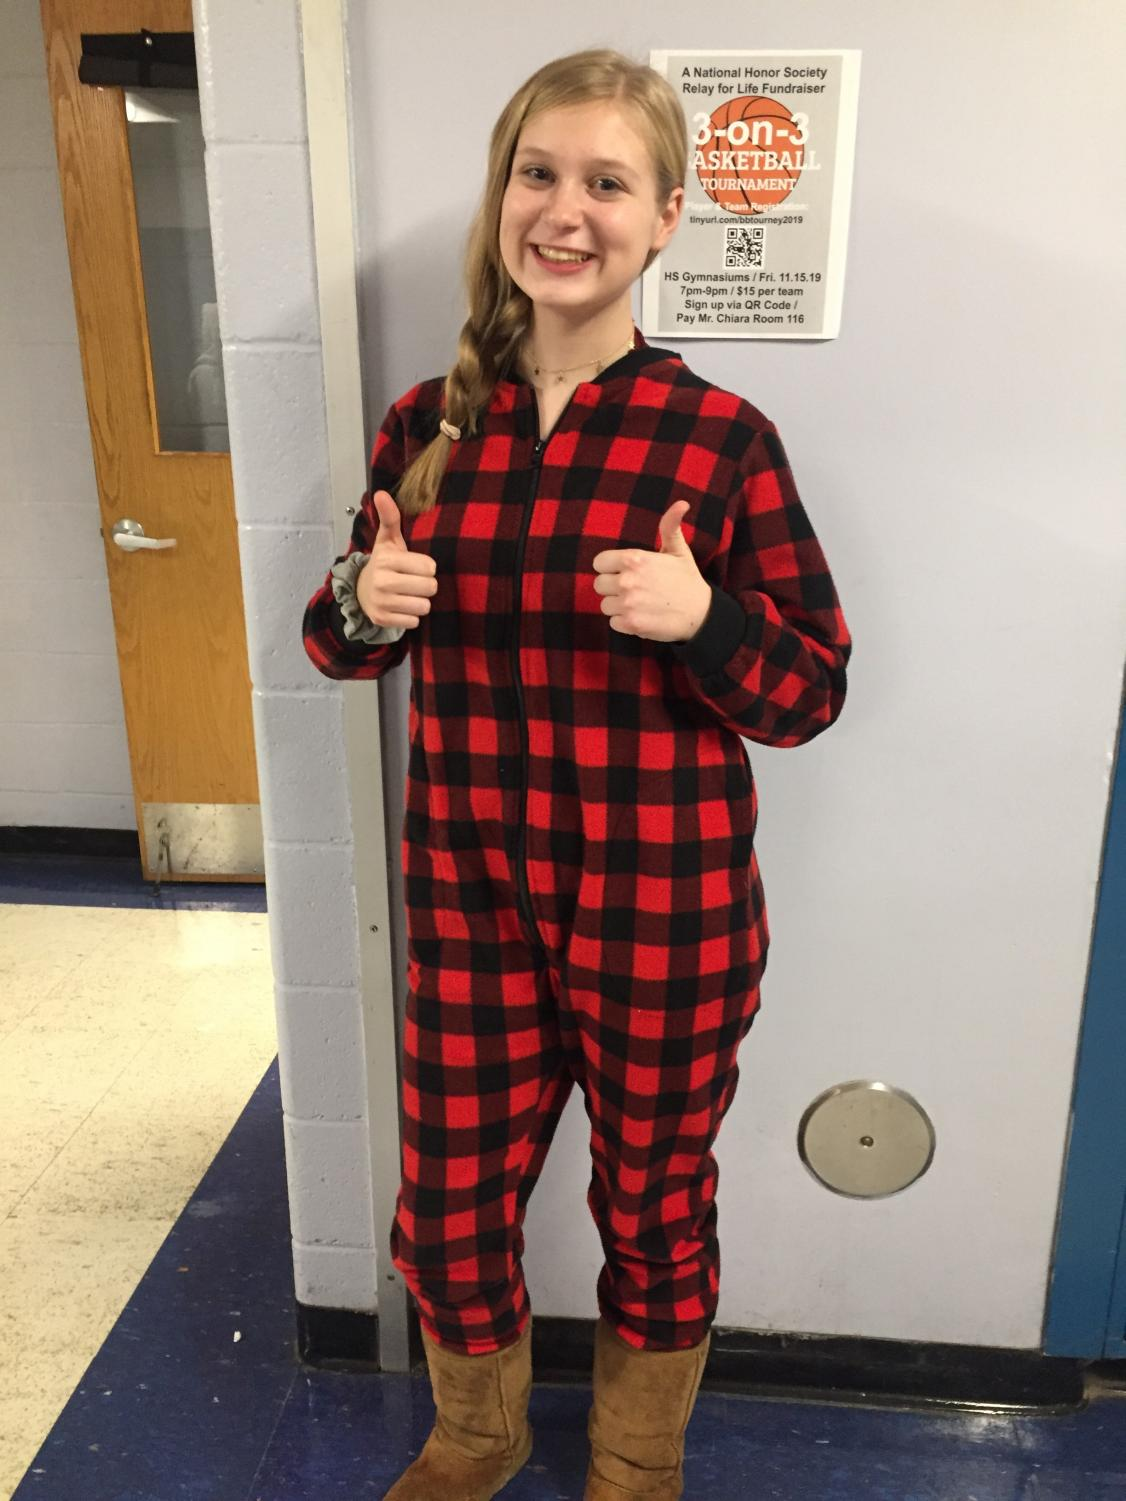 """Junior Emily Kovacsy offers two thumbs-up in favor of wearing pajamas to school in support of the recent DECA Good Grief fundraiser. Students and staff members paid $1 to wear either pajamas, a hat or blue jeans to school on Tuesday, Nov 5. Good Grief is a New Jersey Statewide Community Service Project meant to teach students """"business skills, and also serve their community and society as a whole,"""" according to the New Jersey DECA website. The proceeds from this fundraiser go to Good Grief, which provides a variety of free support for those who have lost loved ones. The Warren Hills event raised $312. Students in English Teacher Emily Kablis' homeroom were recognized for recording the highest participation rate on Good Grief day. (Photo by Samantha Lewis)"""